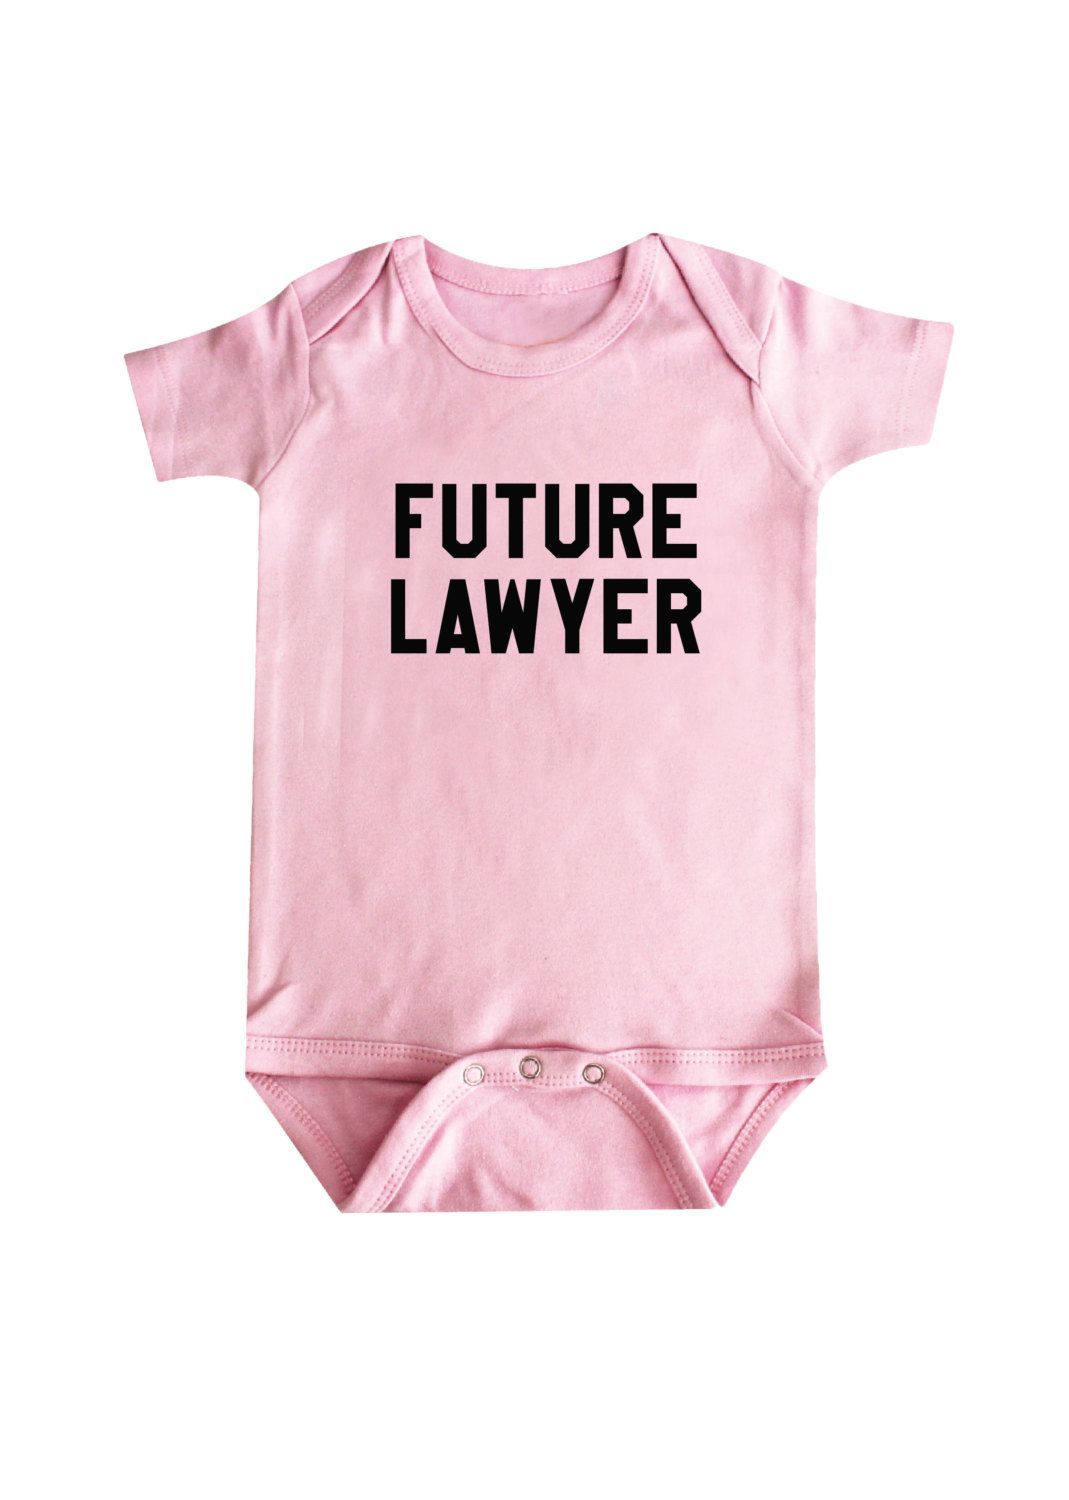 c387ea74e Future Lawyer Baby Clothes, Bodysuit, Baby Shower Gift, Funny Baby Clothes, Baby  Boy, Baby Girl, Baby Lawyer by BabyApparels on Etsy